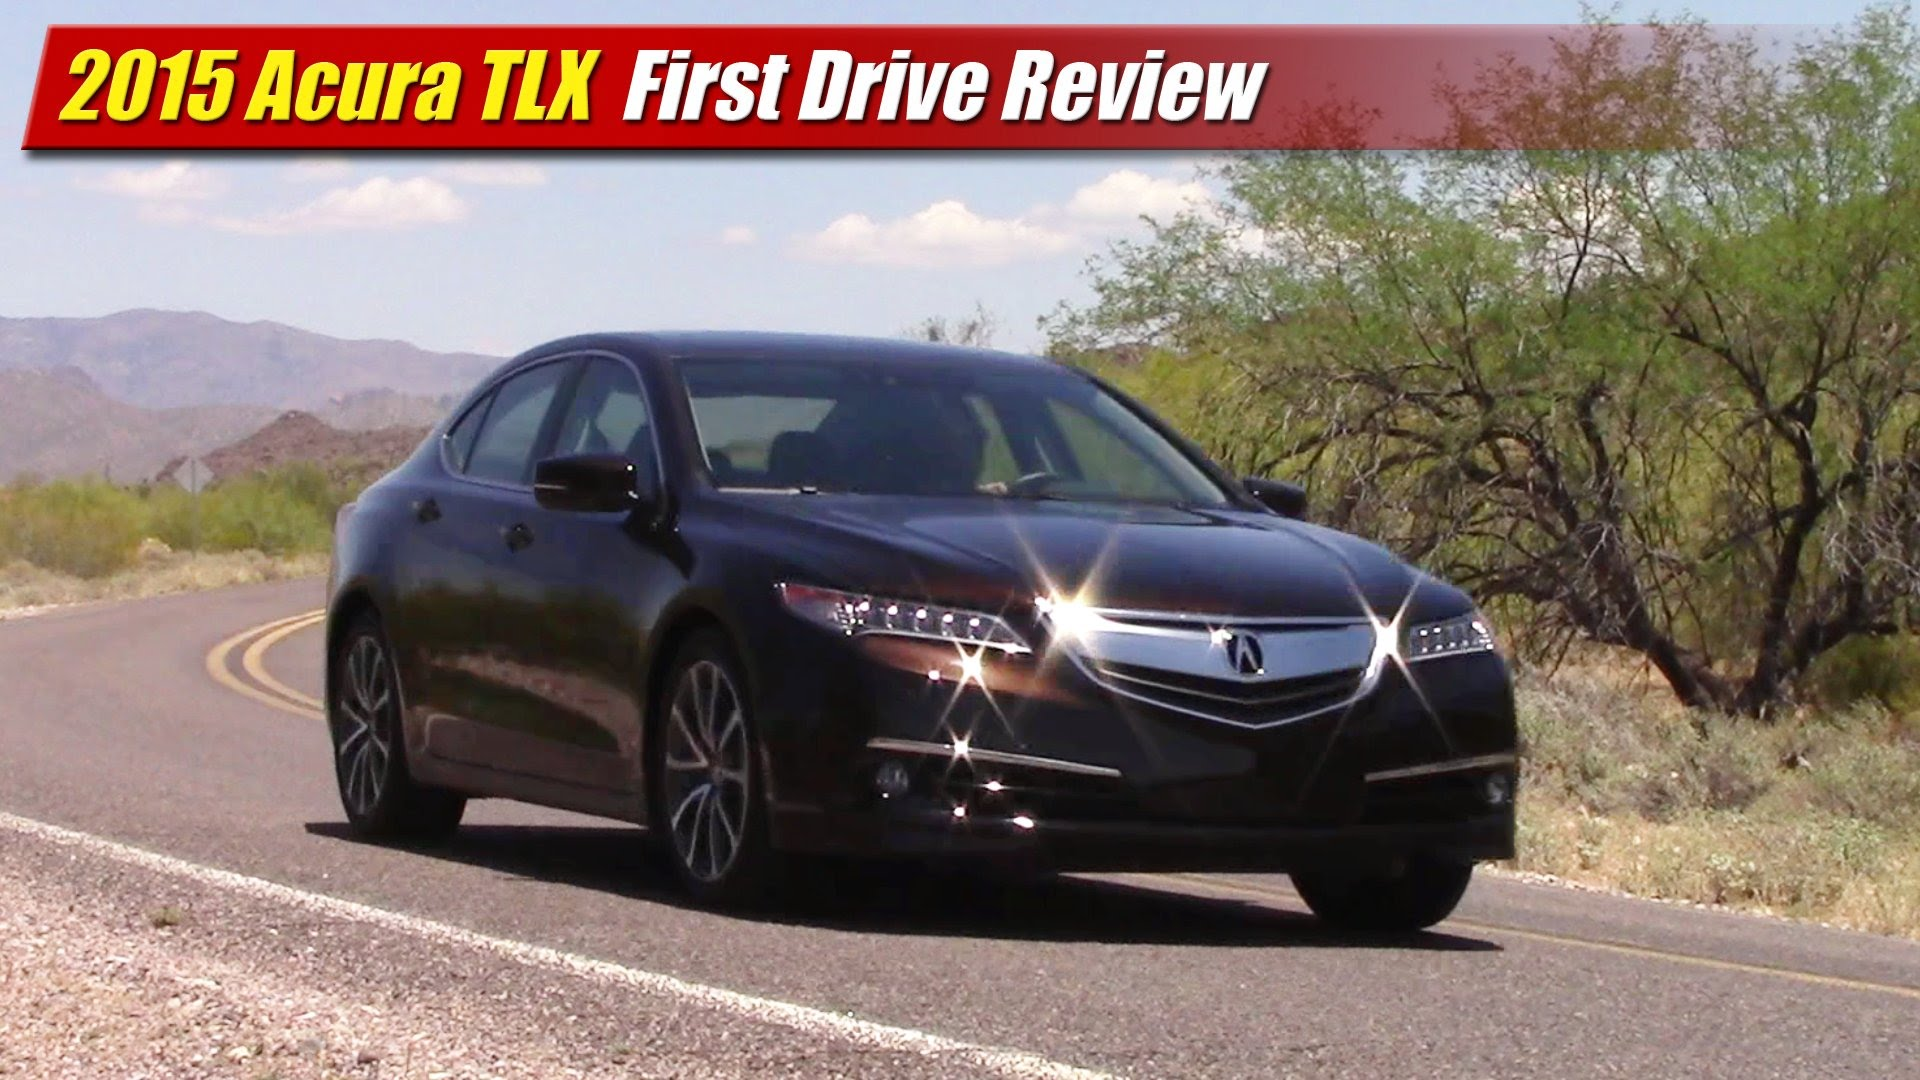 First Drive Review 2015 Acura Tlx Testdriven Tv